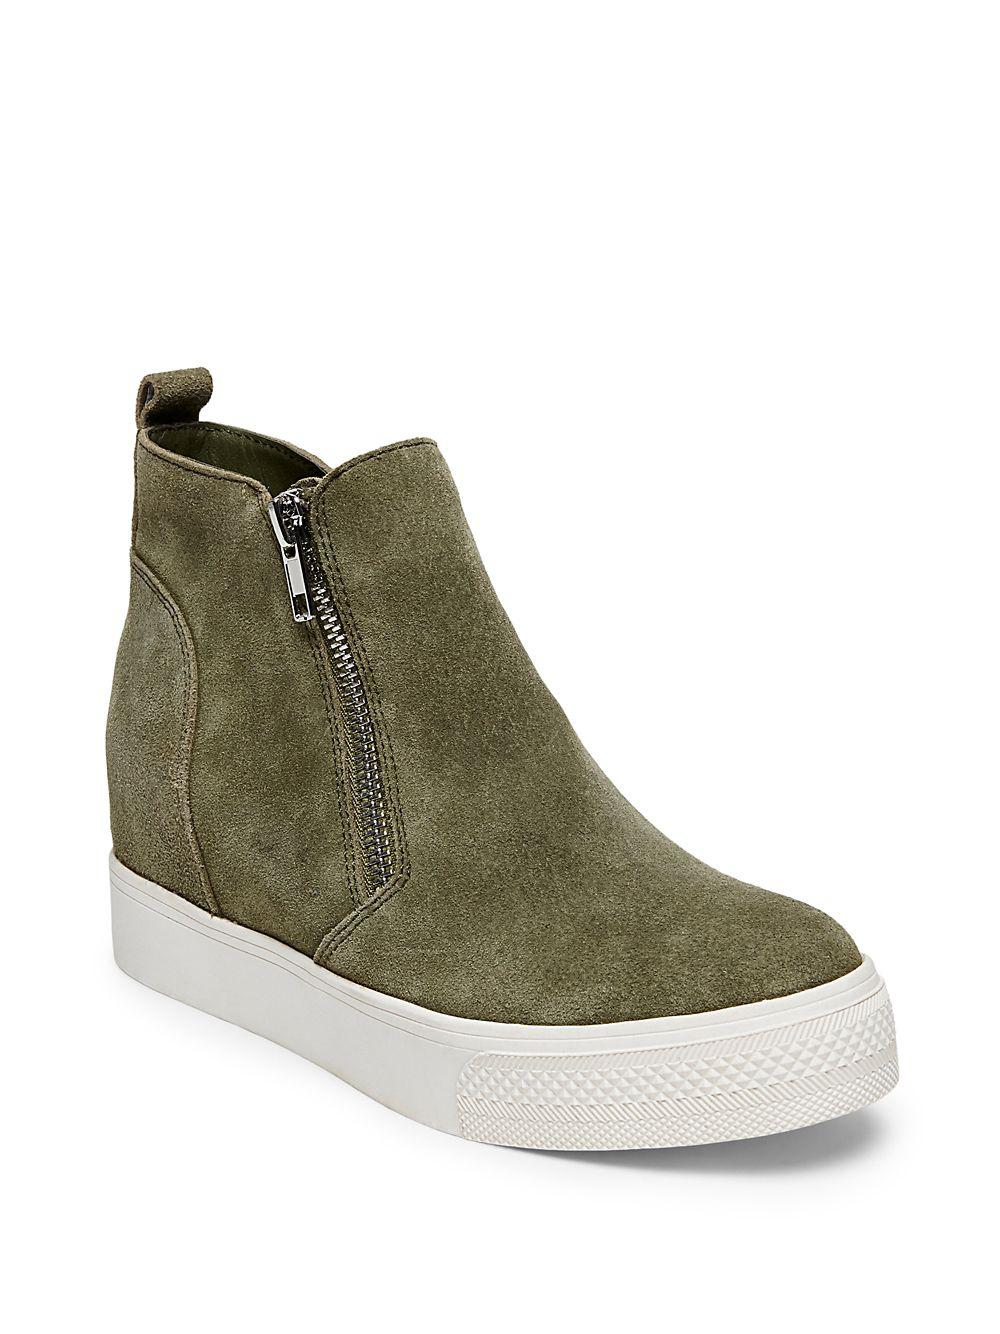 c98fddccfb0 Steve Madden Wedgie Zipped Suede Sneakers in Green - Lyst